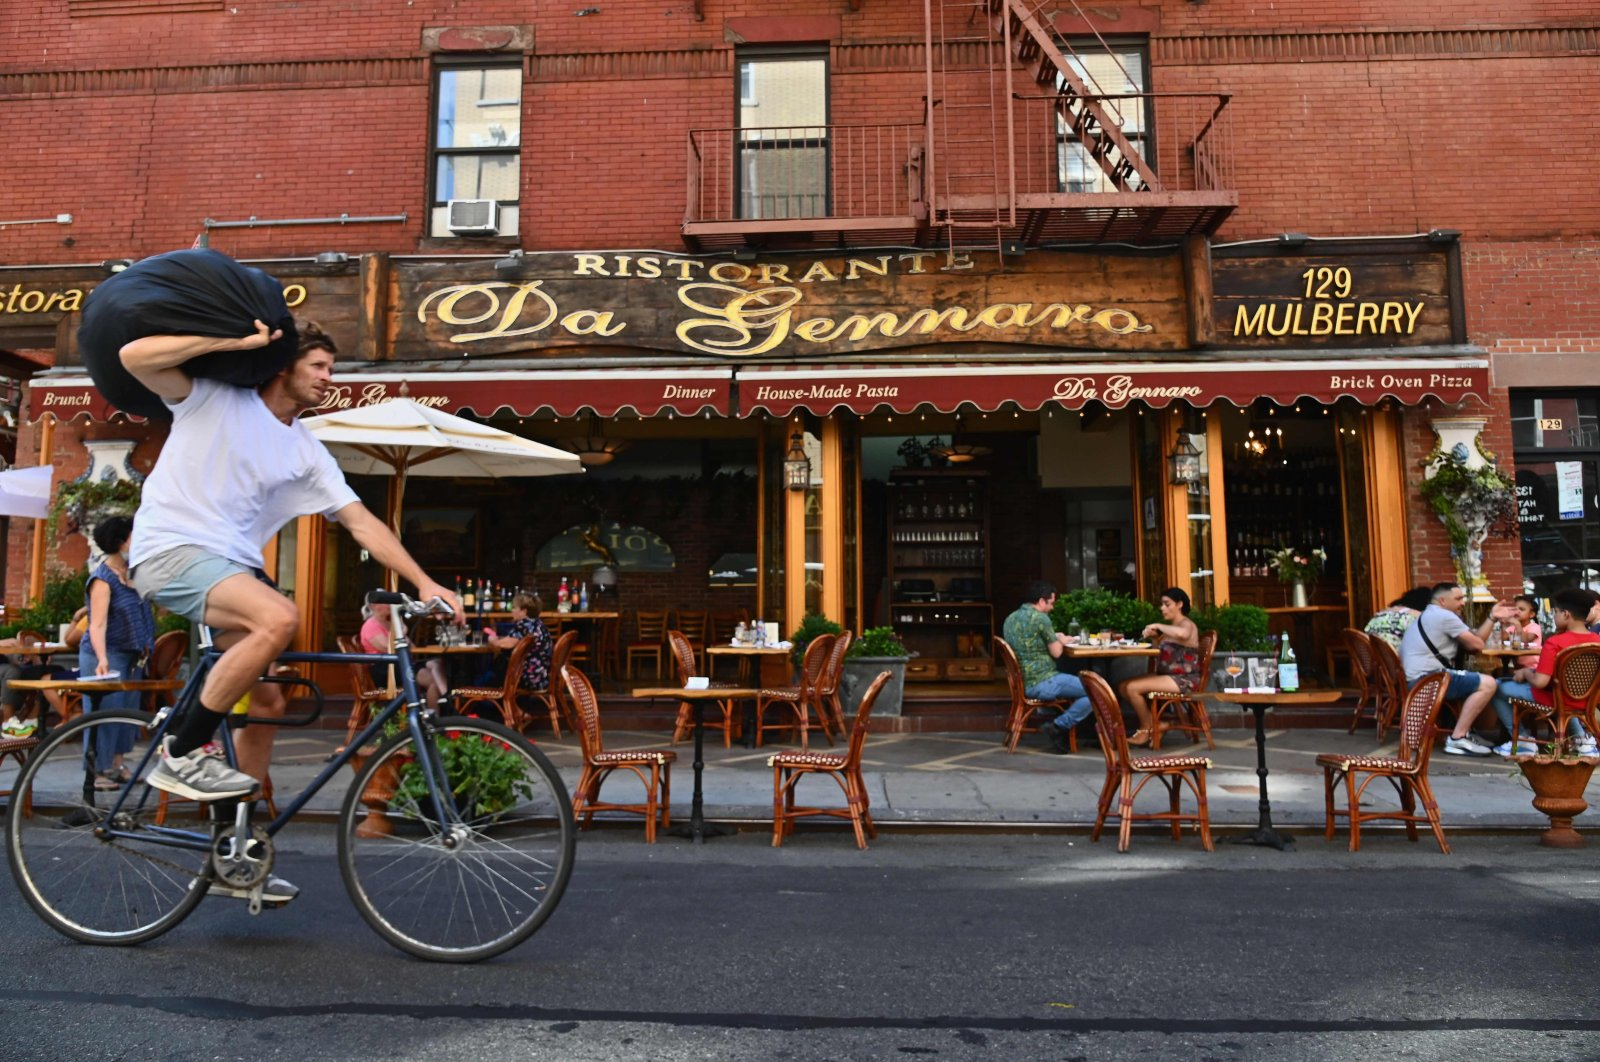 A biker goes past a restaurant with outdoor seating in the Little Italy neighborhood, New York City, June 24, 2020. (AFP Photo)